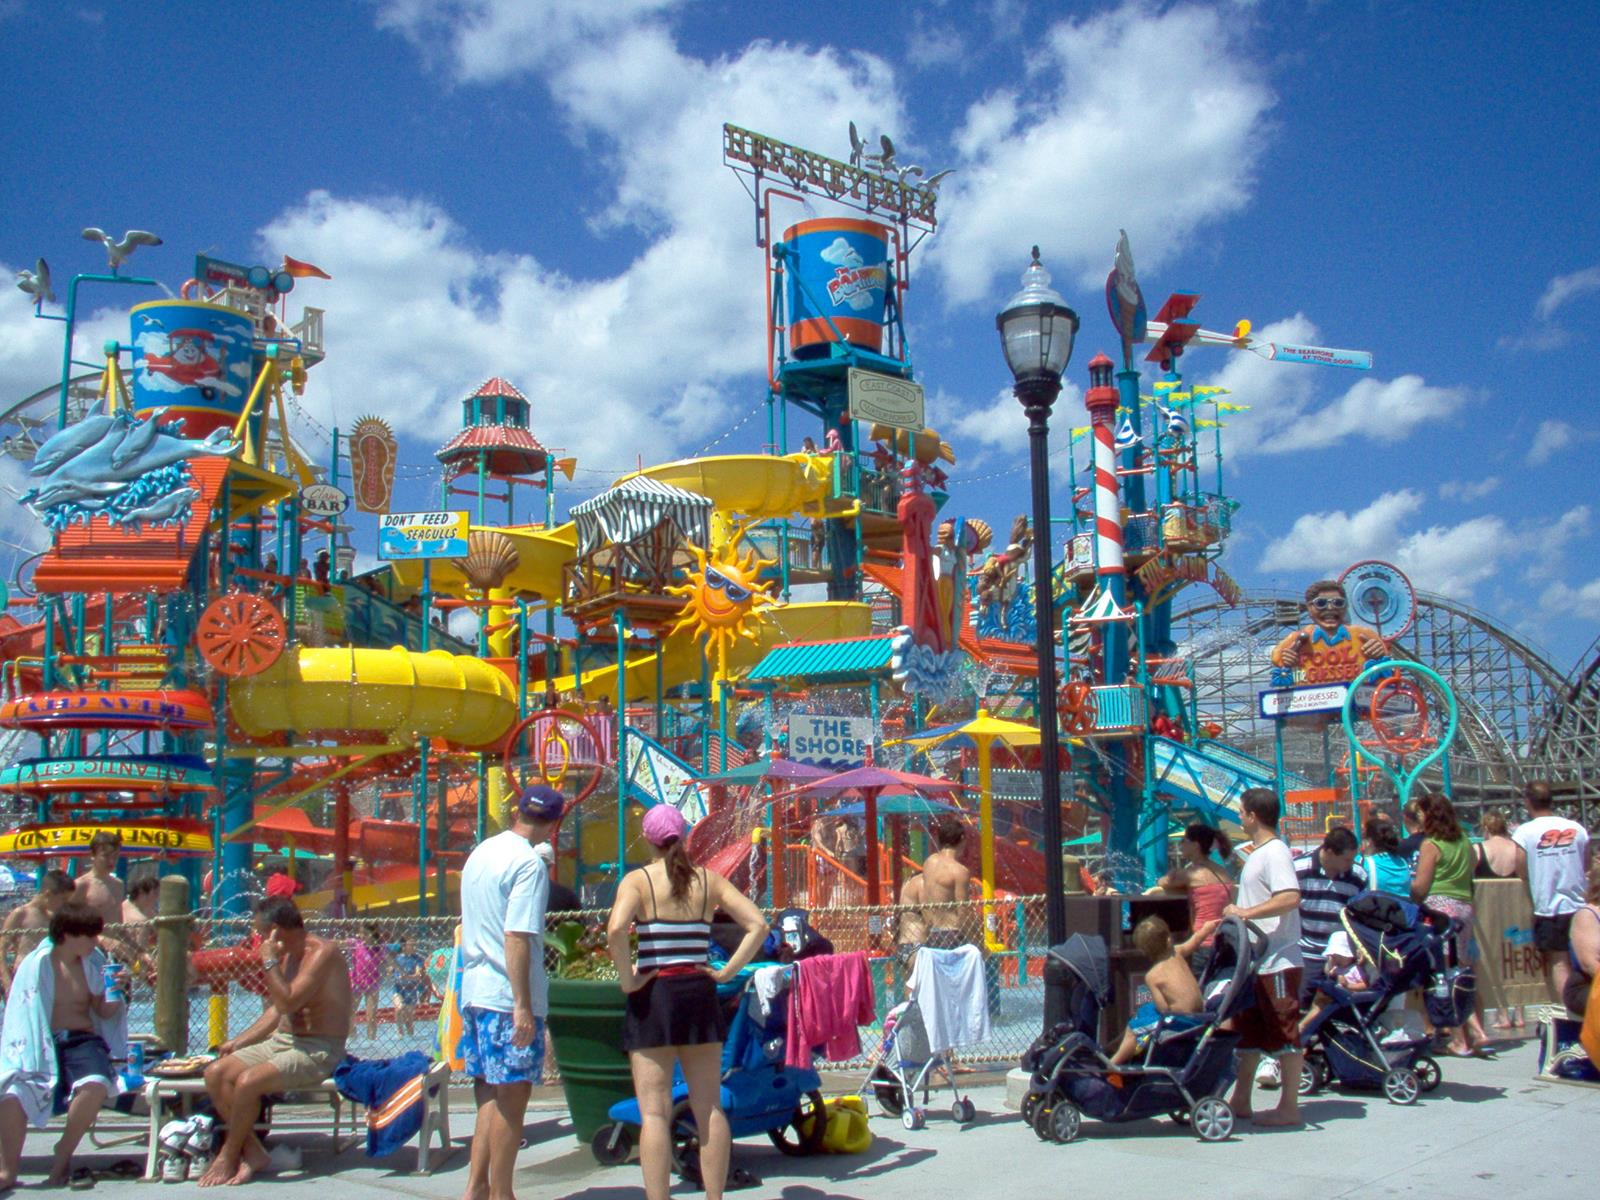 10 Top Mid Atlantic Amusement Parks And Water Parks For Student Groups